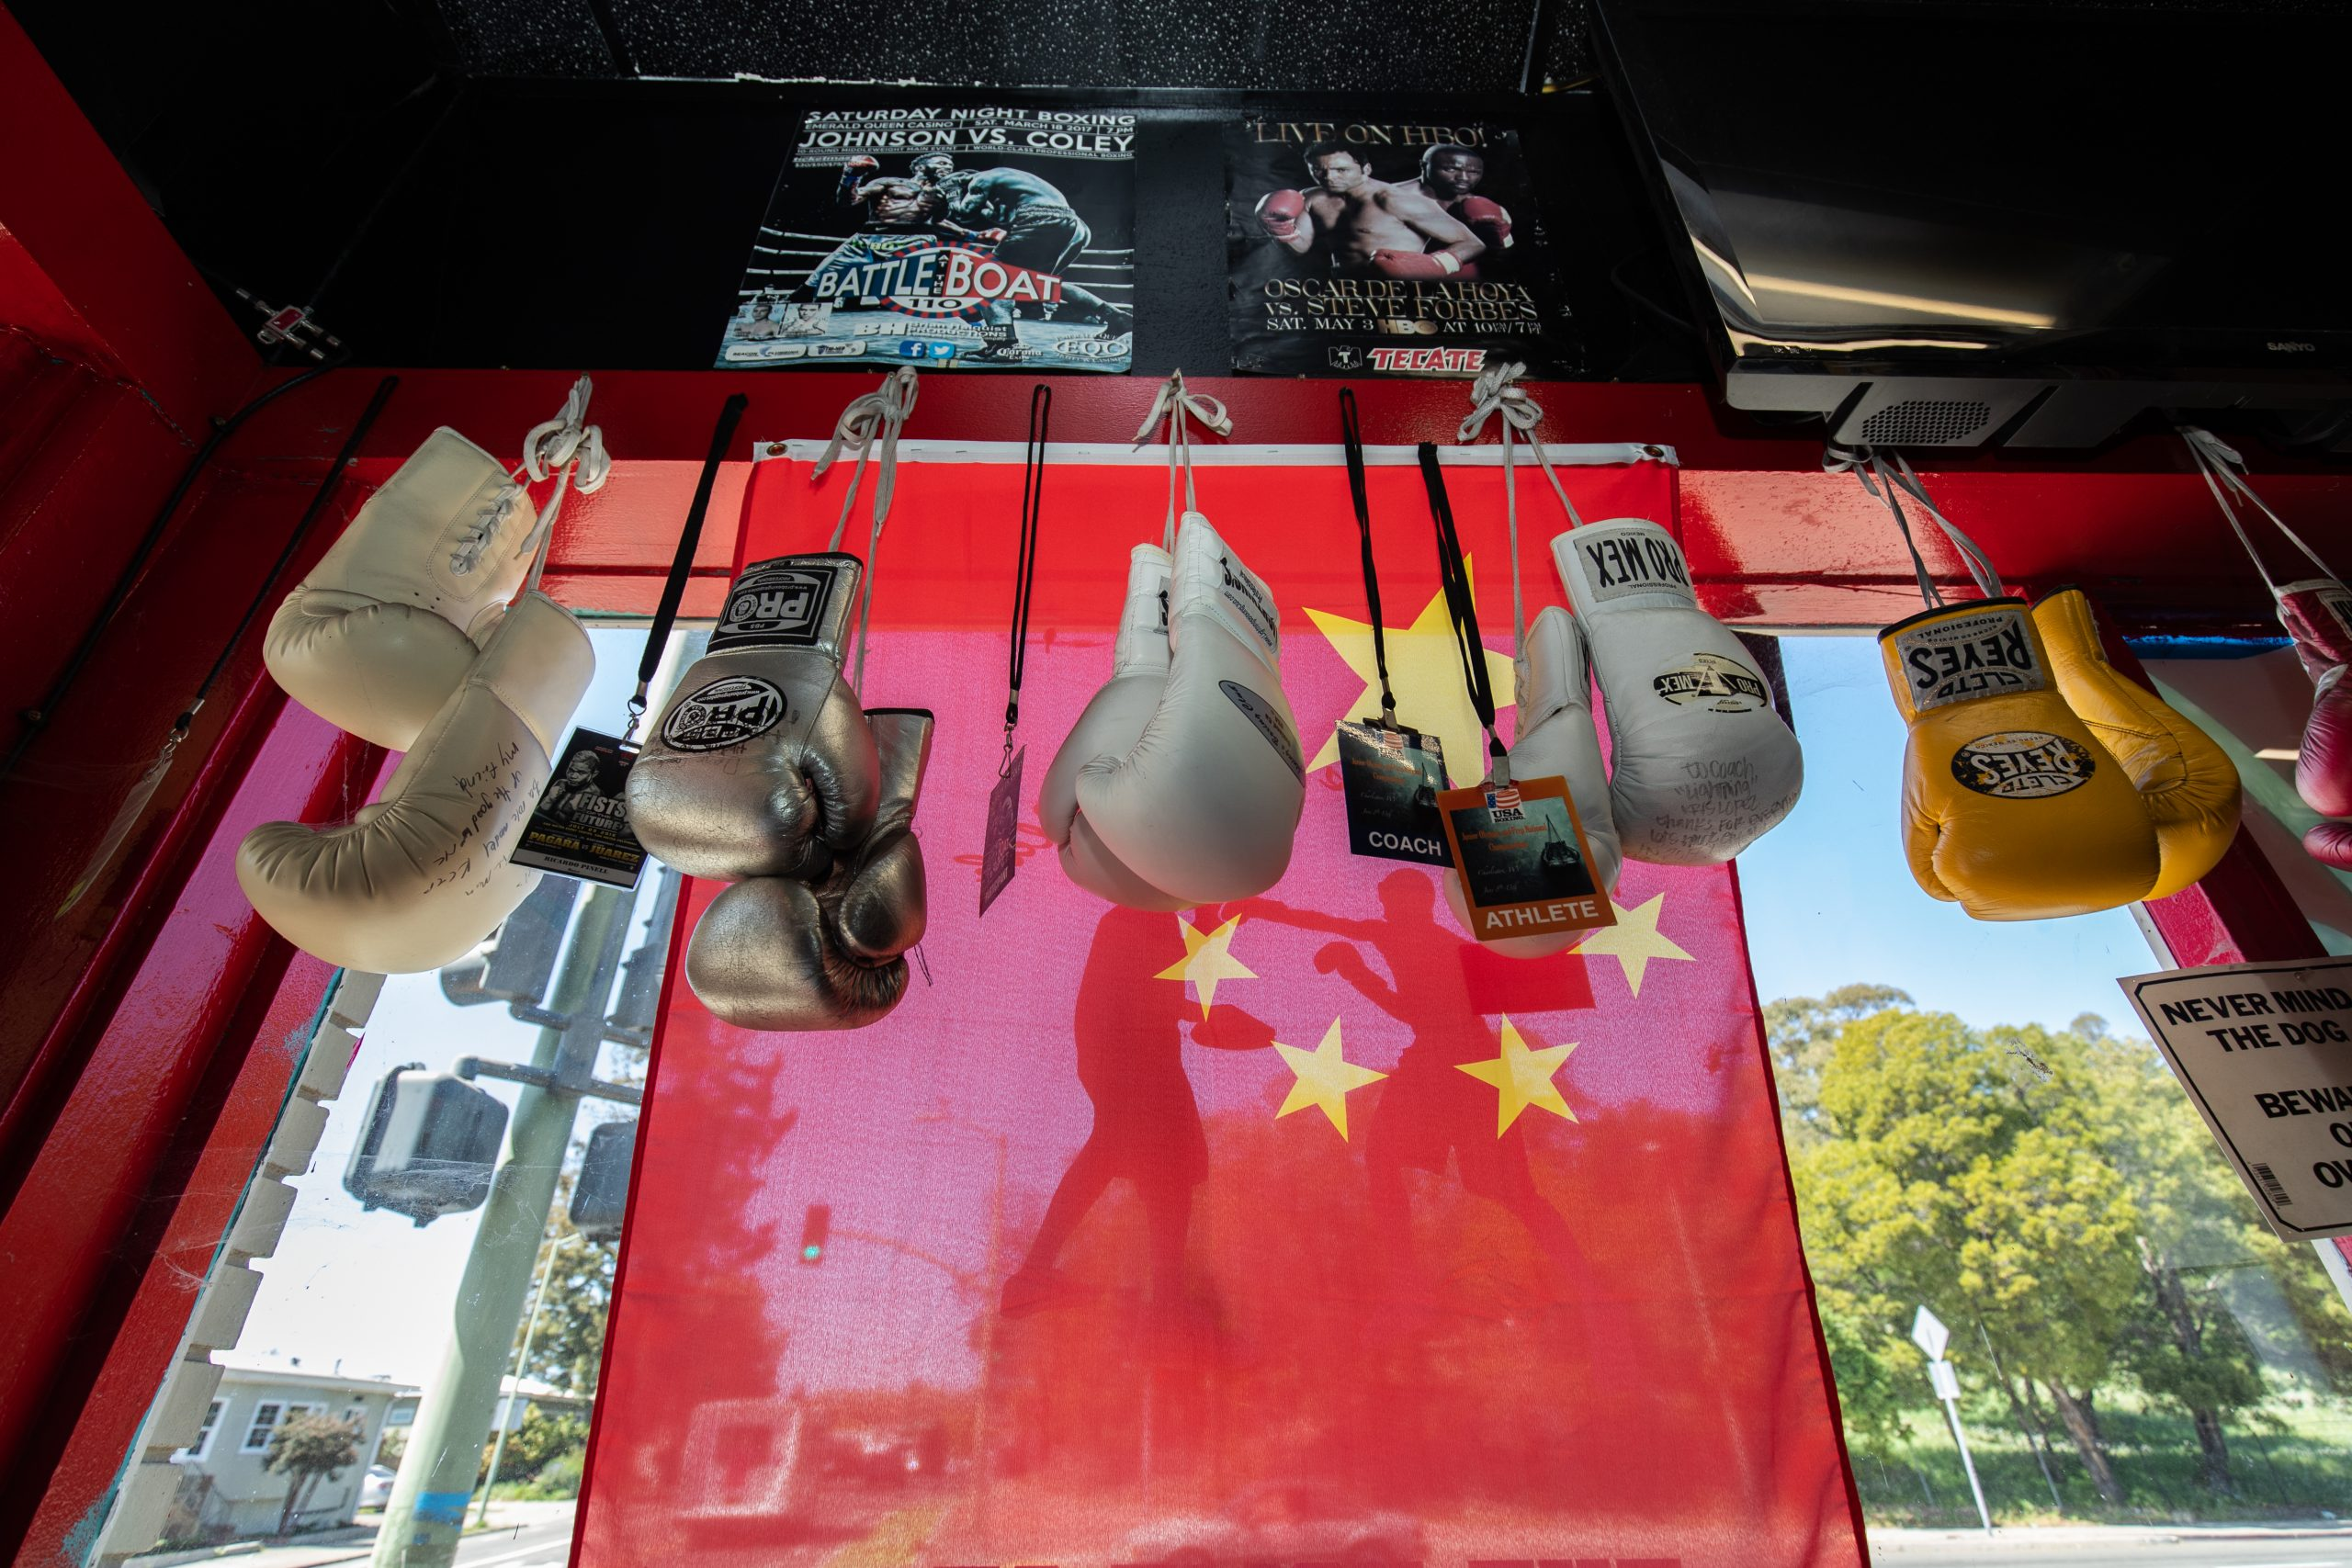 Signed gloves hanging in the window, Lightning Boxing Club, Oakland, CA